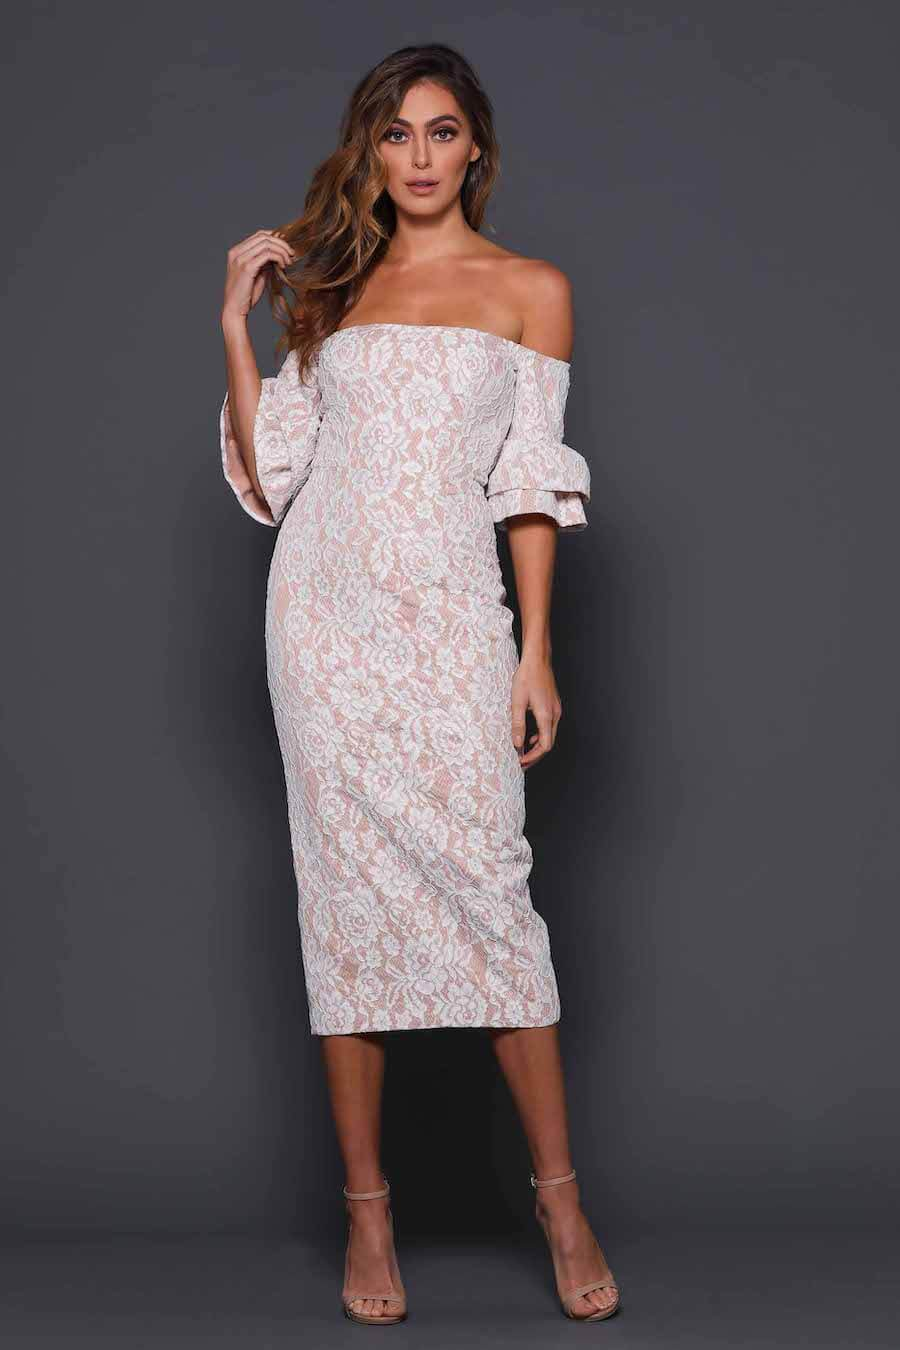 Off shoulder lace dress with nude underlay and dropped sleeves